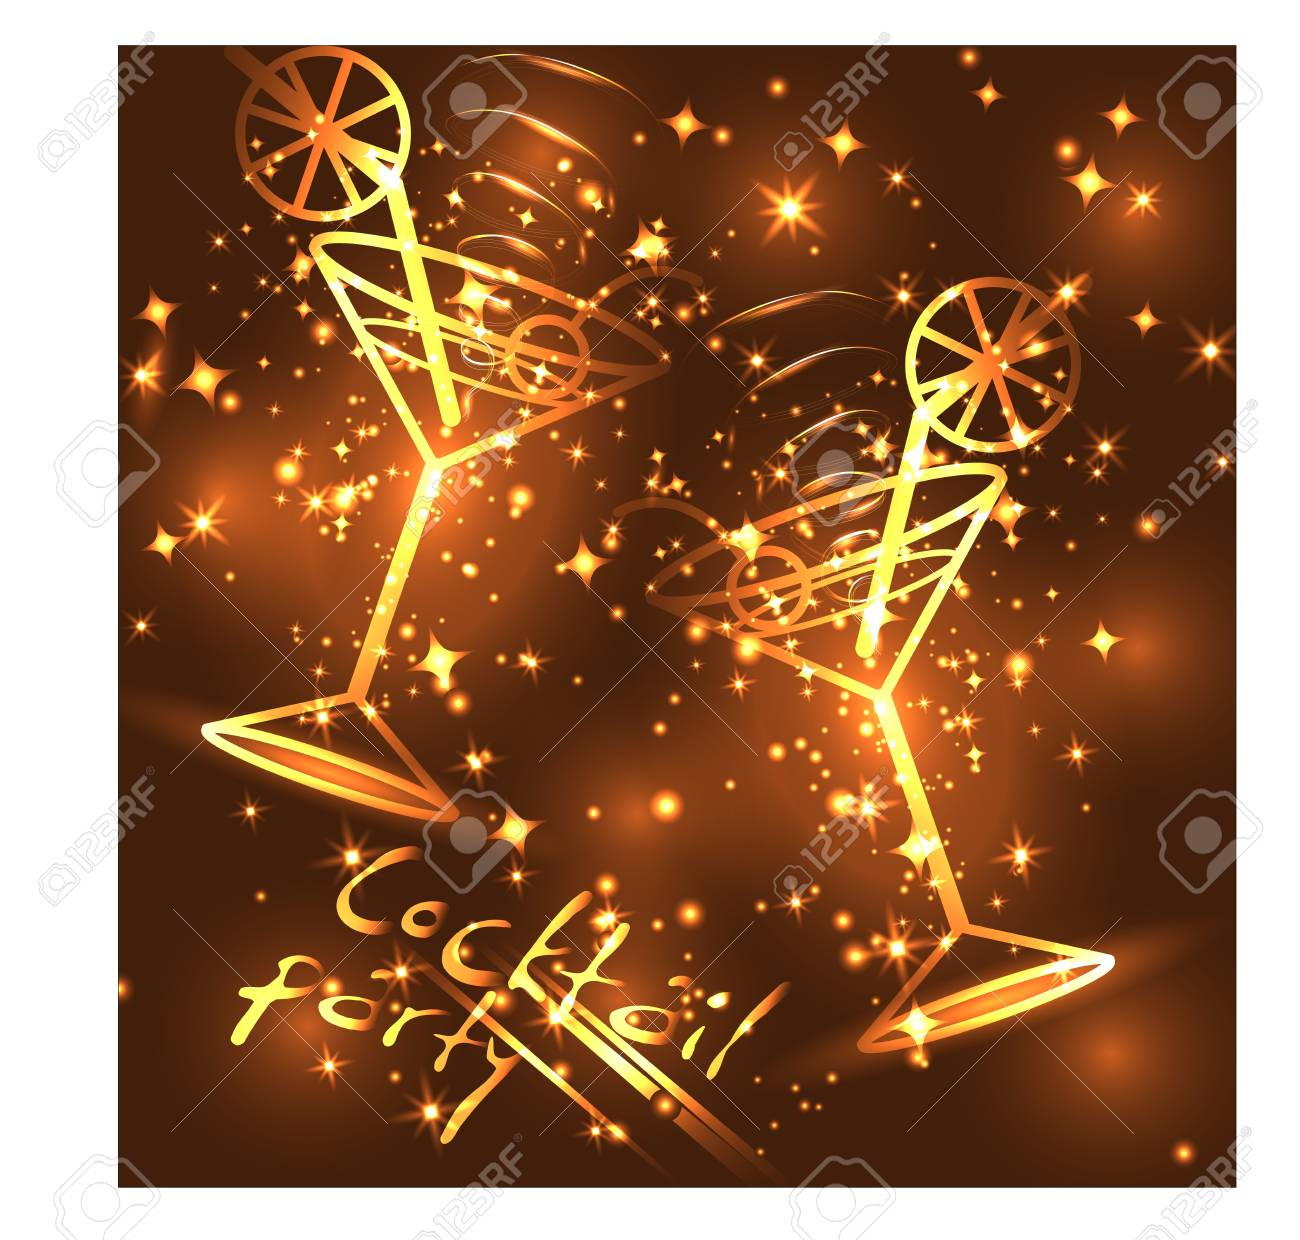 04c4f92ea664 Golden outline of glasses with a cocktail on a brown background with stars  and lights